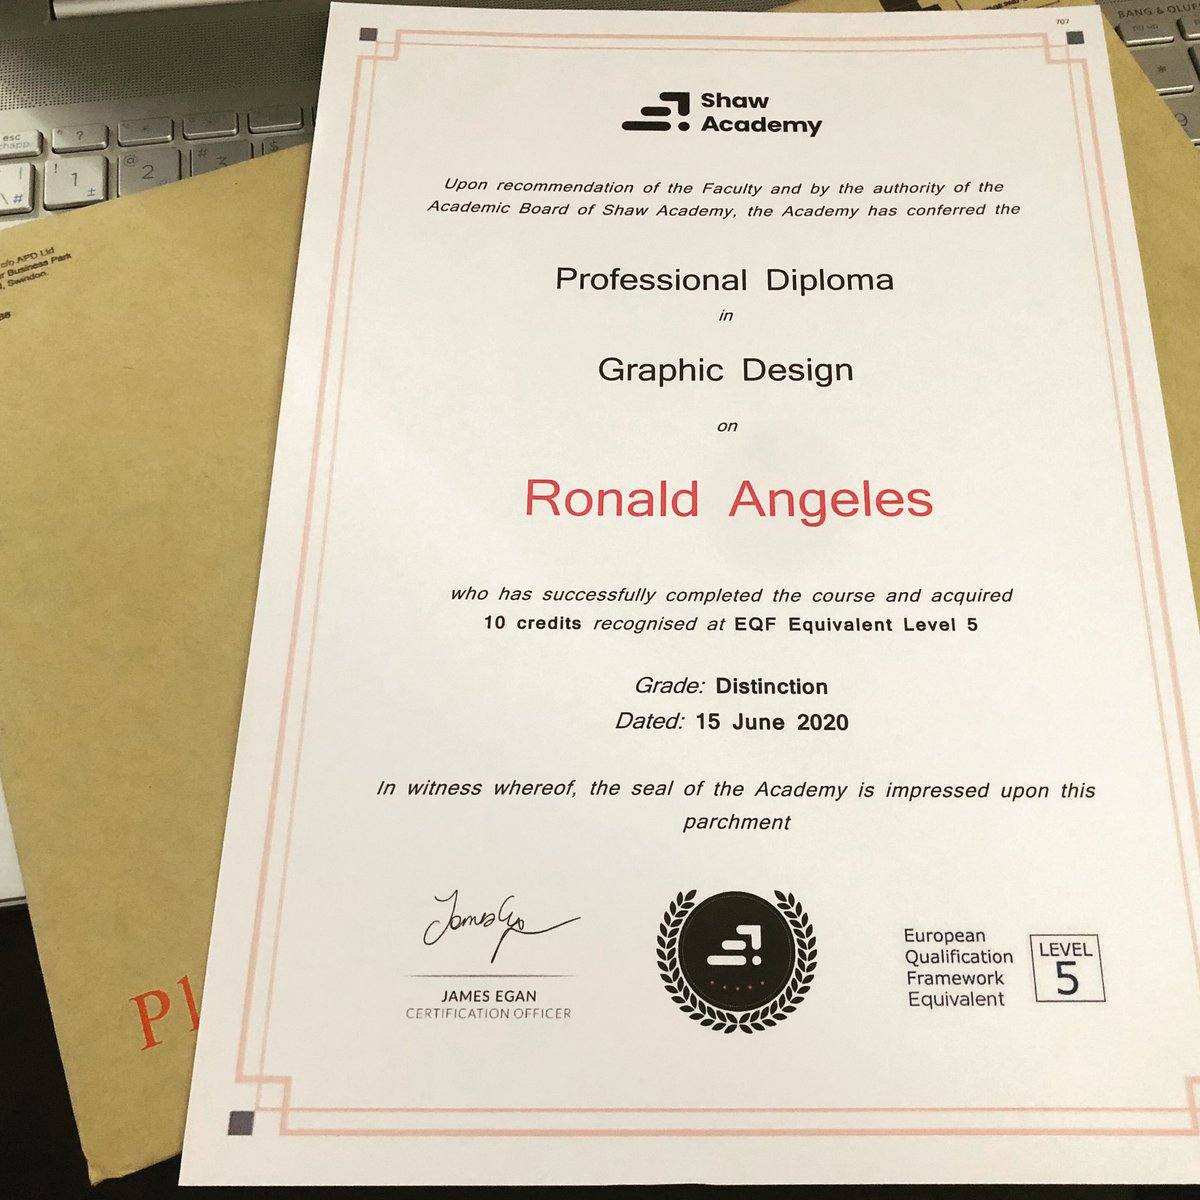 It's official, I successfully completed my Professional Diploma in Graphic Design (with Distinction) @shawacademy.  #shawacademy  #shawacademygraphicdesign  #canada #toronto https://t.co/IKjvdIs3aT